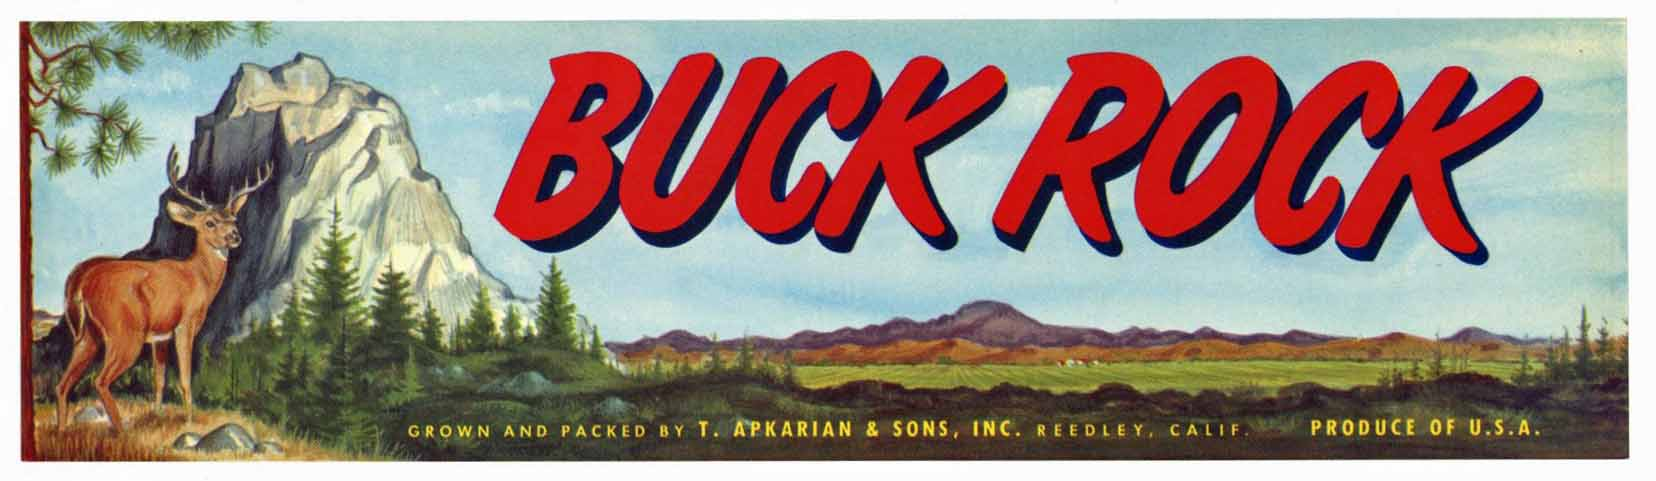 Buck Rock Brand Vintage Produce Crate Label